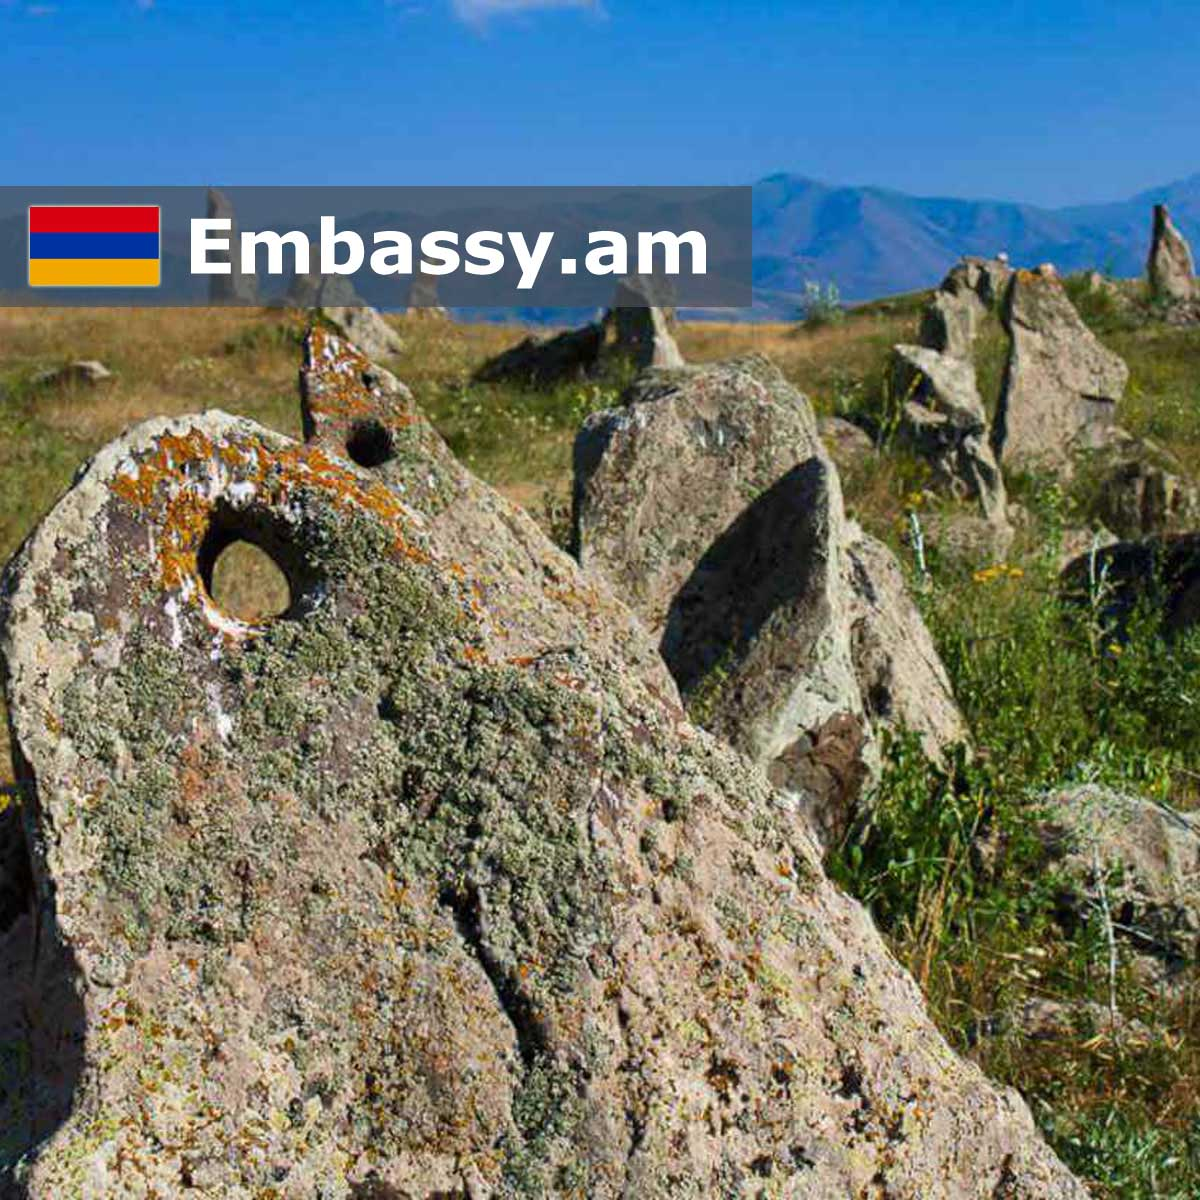 Sisian - Hotels in Armenia - Embassy.am